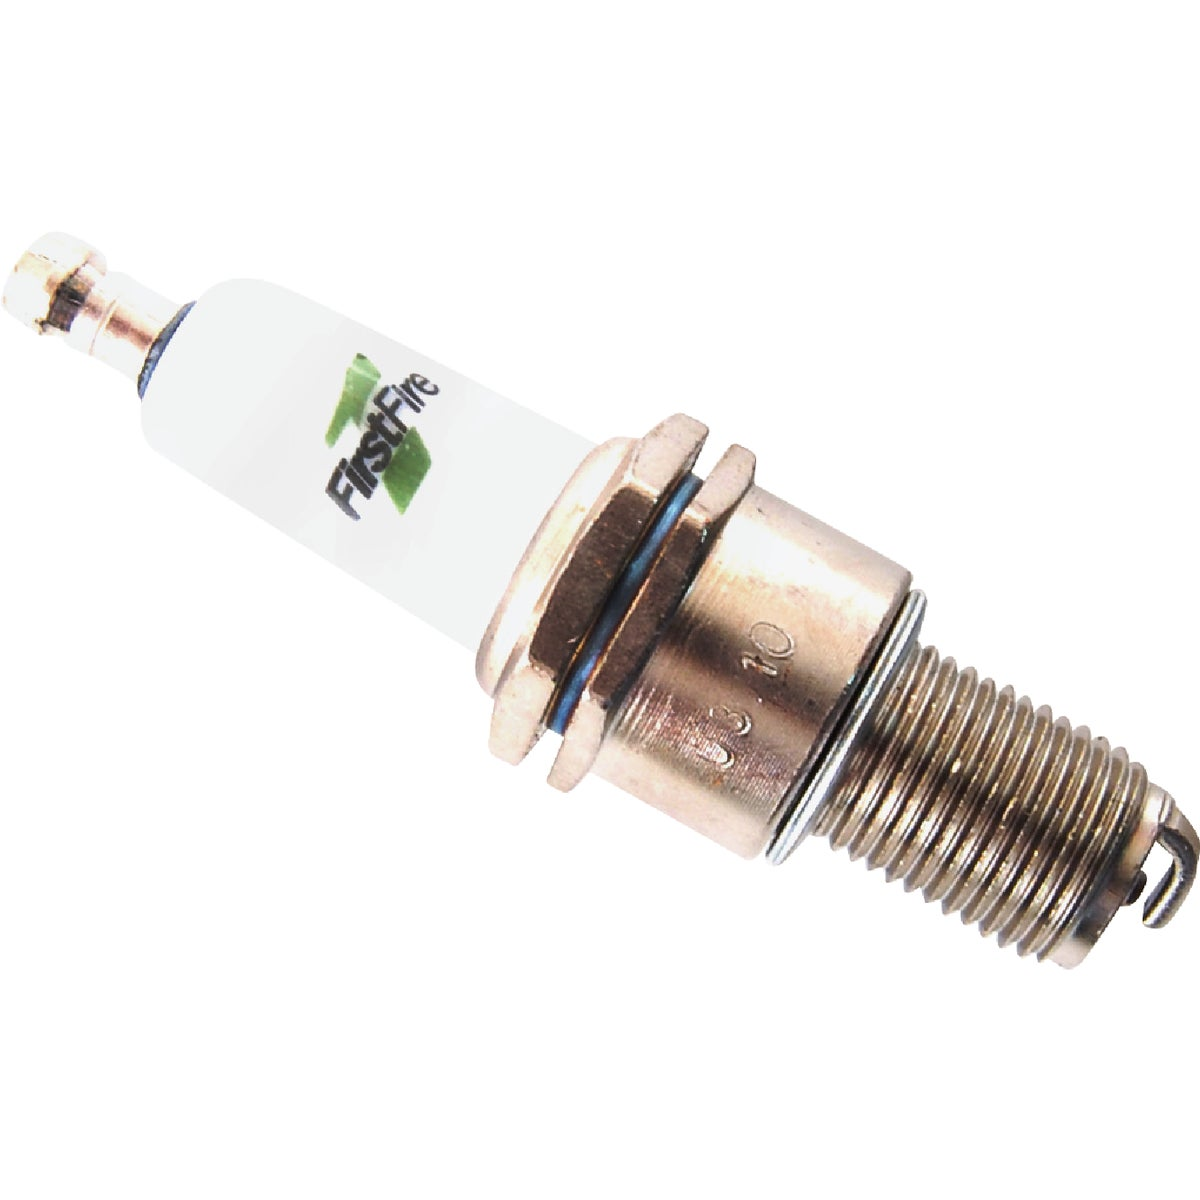 13/17HP TEC SPARK PLUG - FF-18 by Arnold Corp